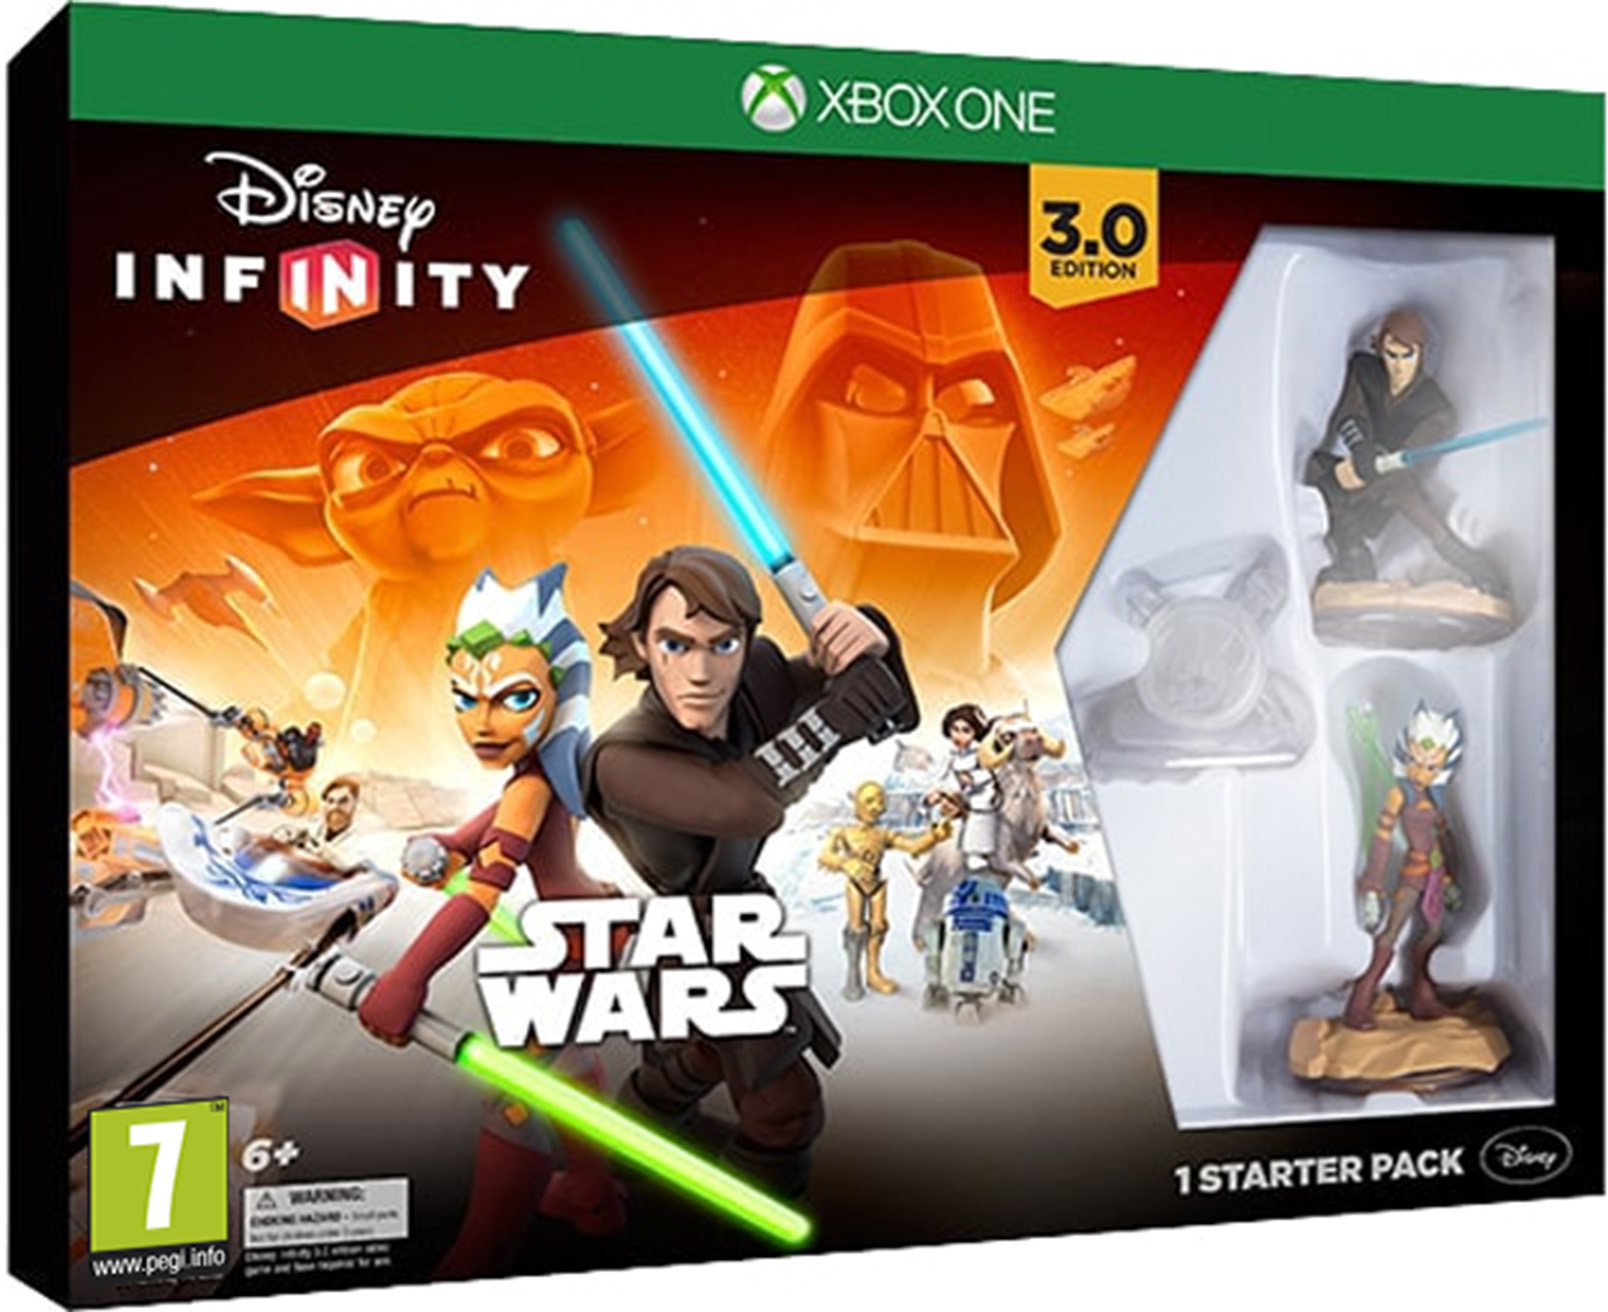 Disney Infinity 3.0 Edition Starter Pack for Xbox One FKF-01325